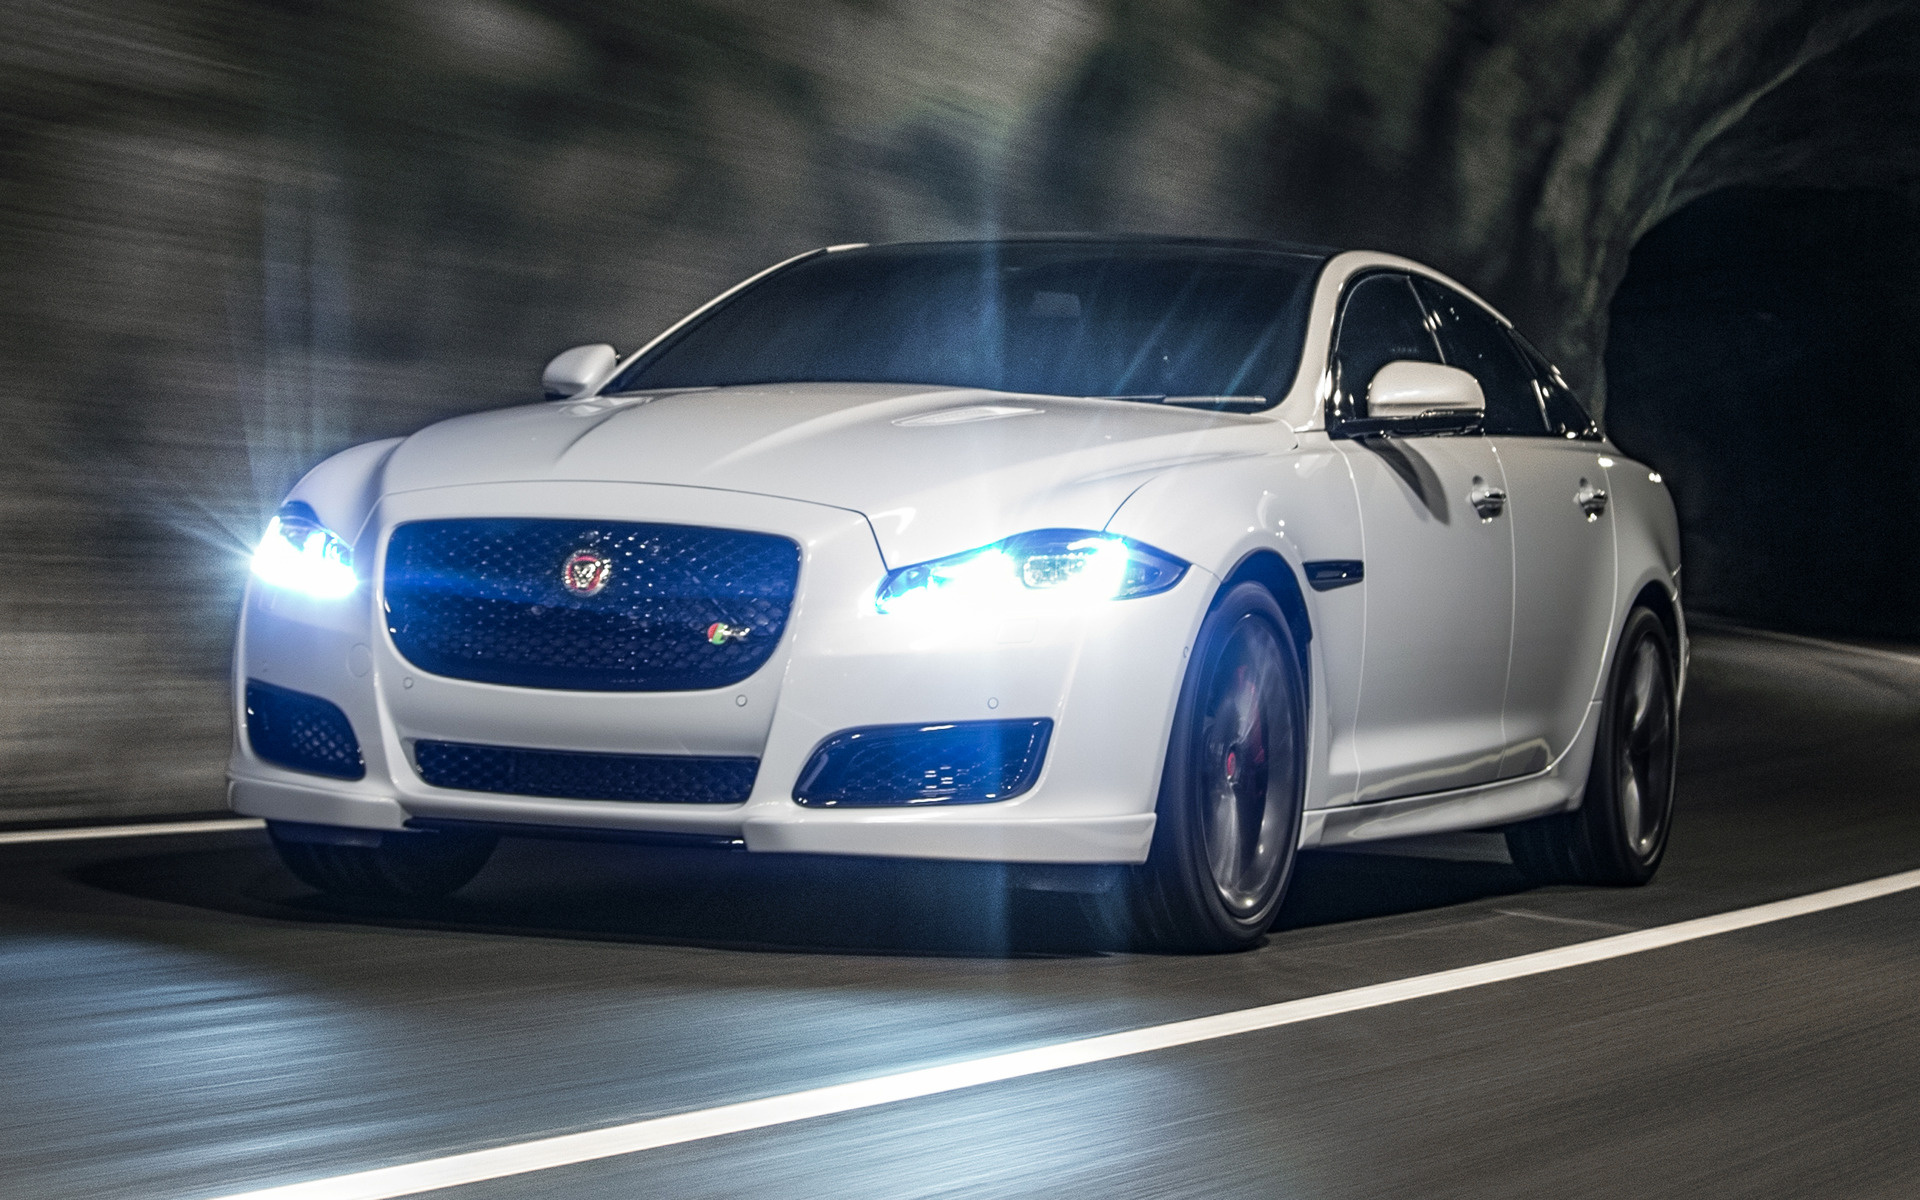 Jaguar Car Wallpaper Wallpapers High Quality: Jaguar XJR (2015) UK Wallpapers And HD Images